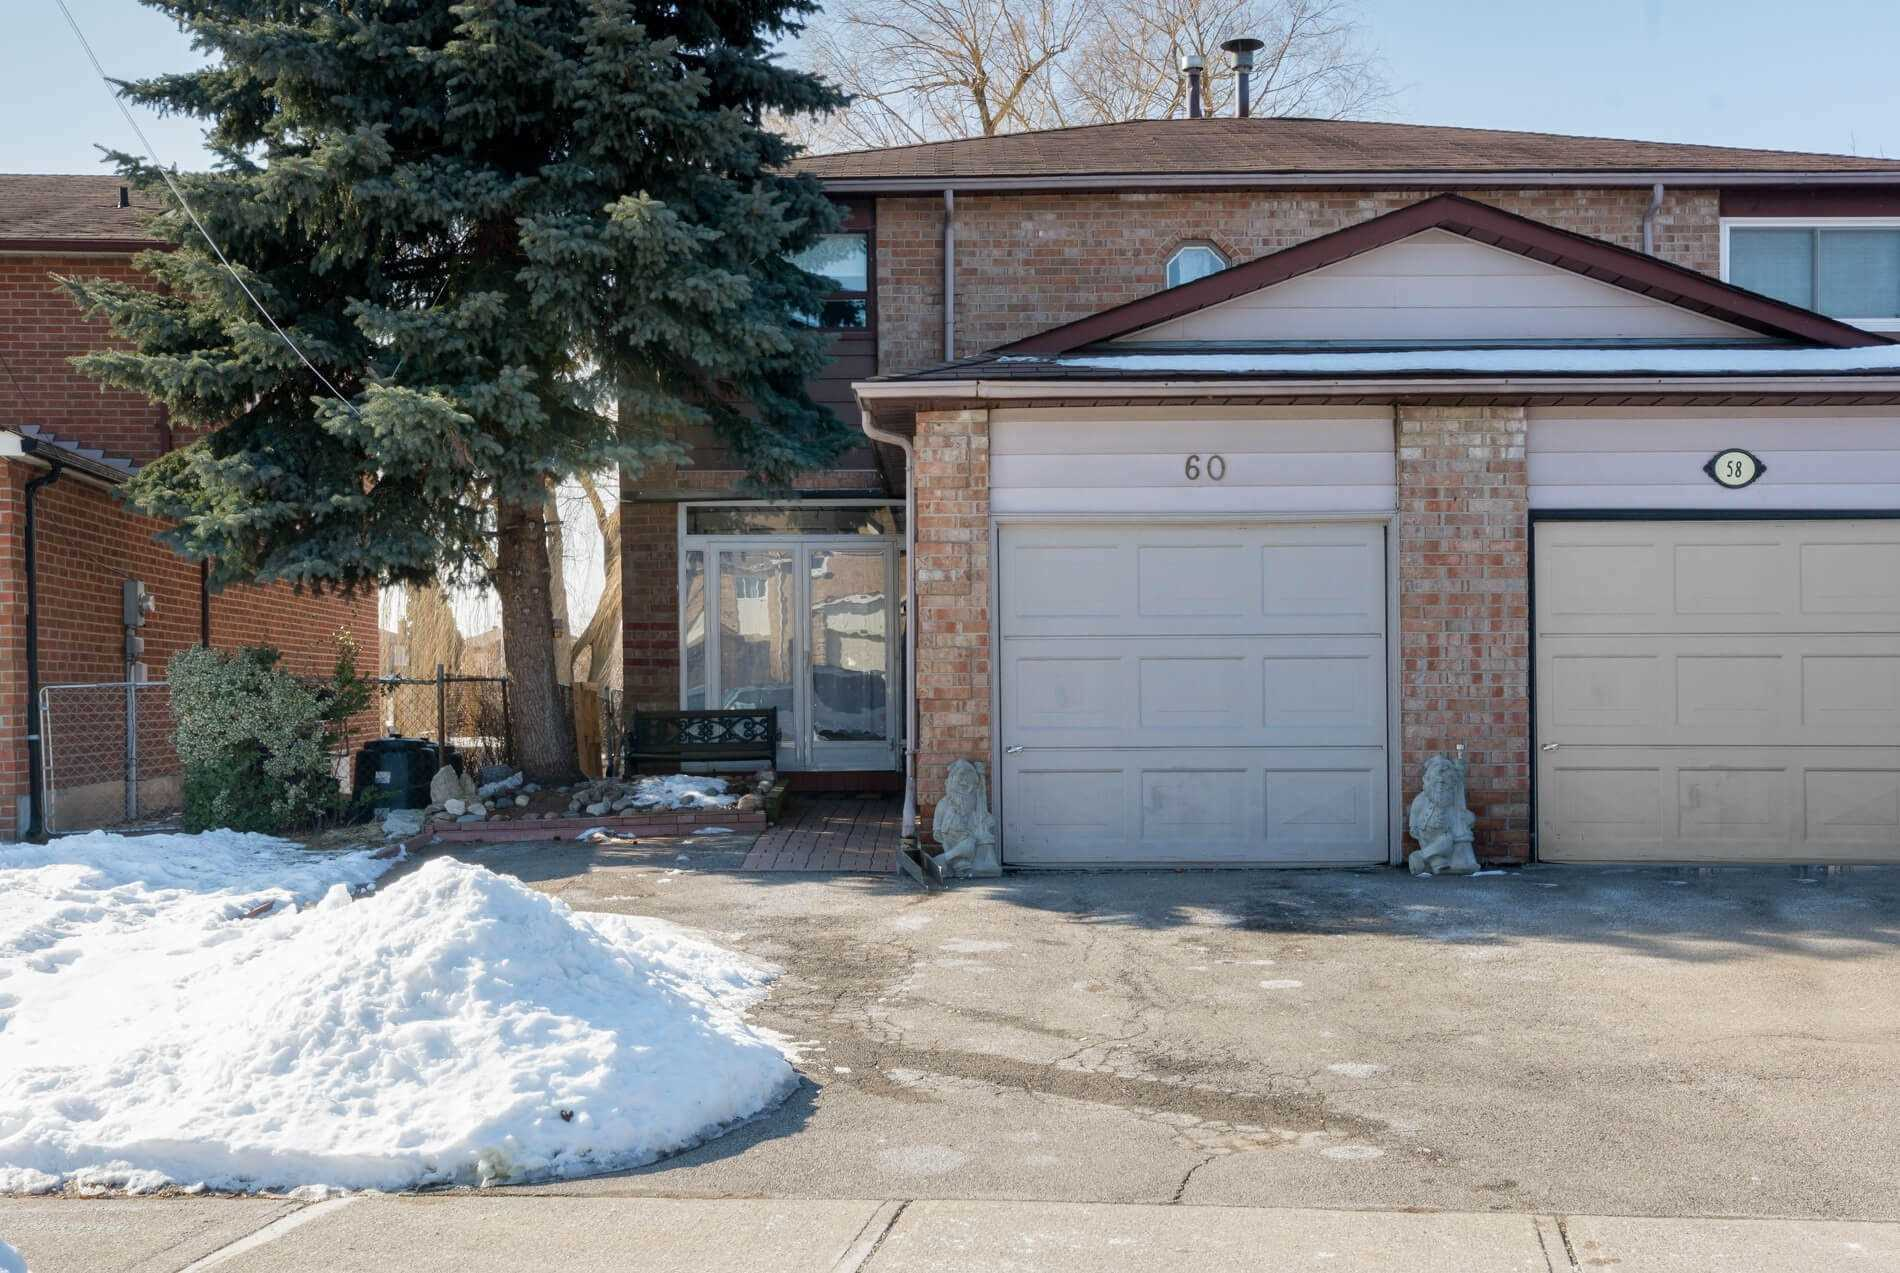 pictures of house for sale MLS: N4700118 located at 60 Ashcroft Crt, Vaughan L4L1H2